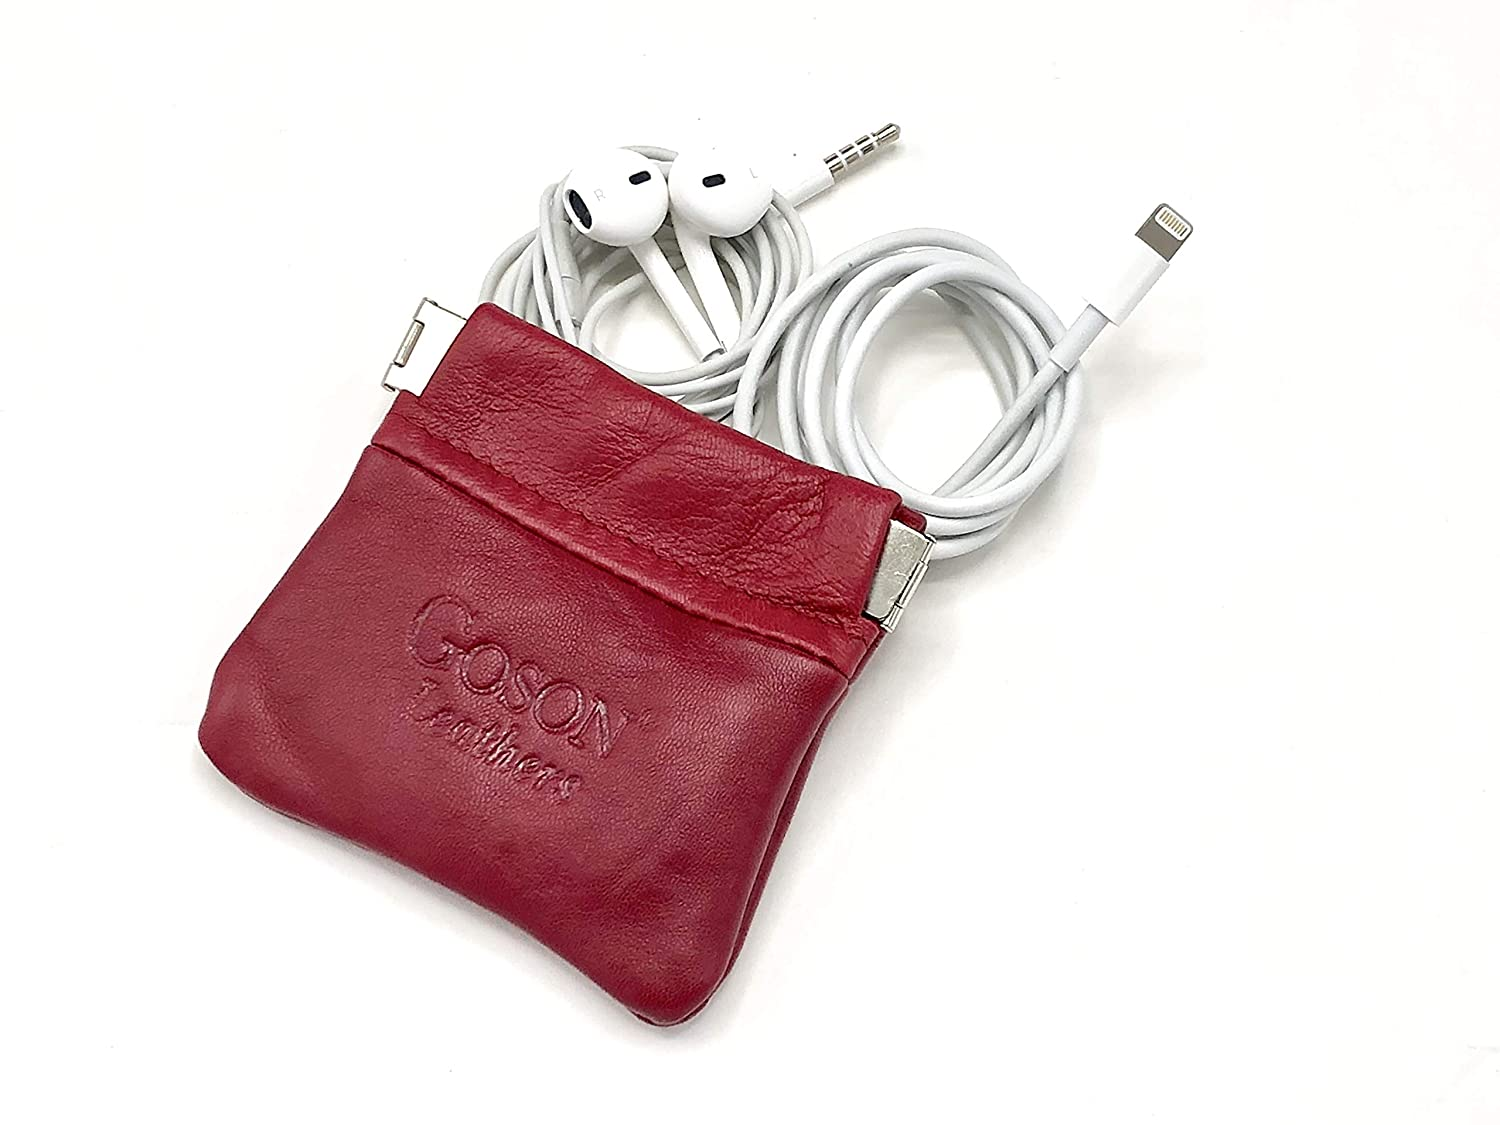 Goson Classic Leather Squeeze Coin Purse change Holder For Men and Women Pouch size 3.50 in X 3.25 in